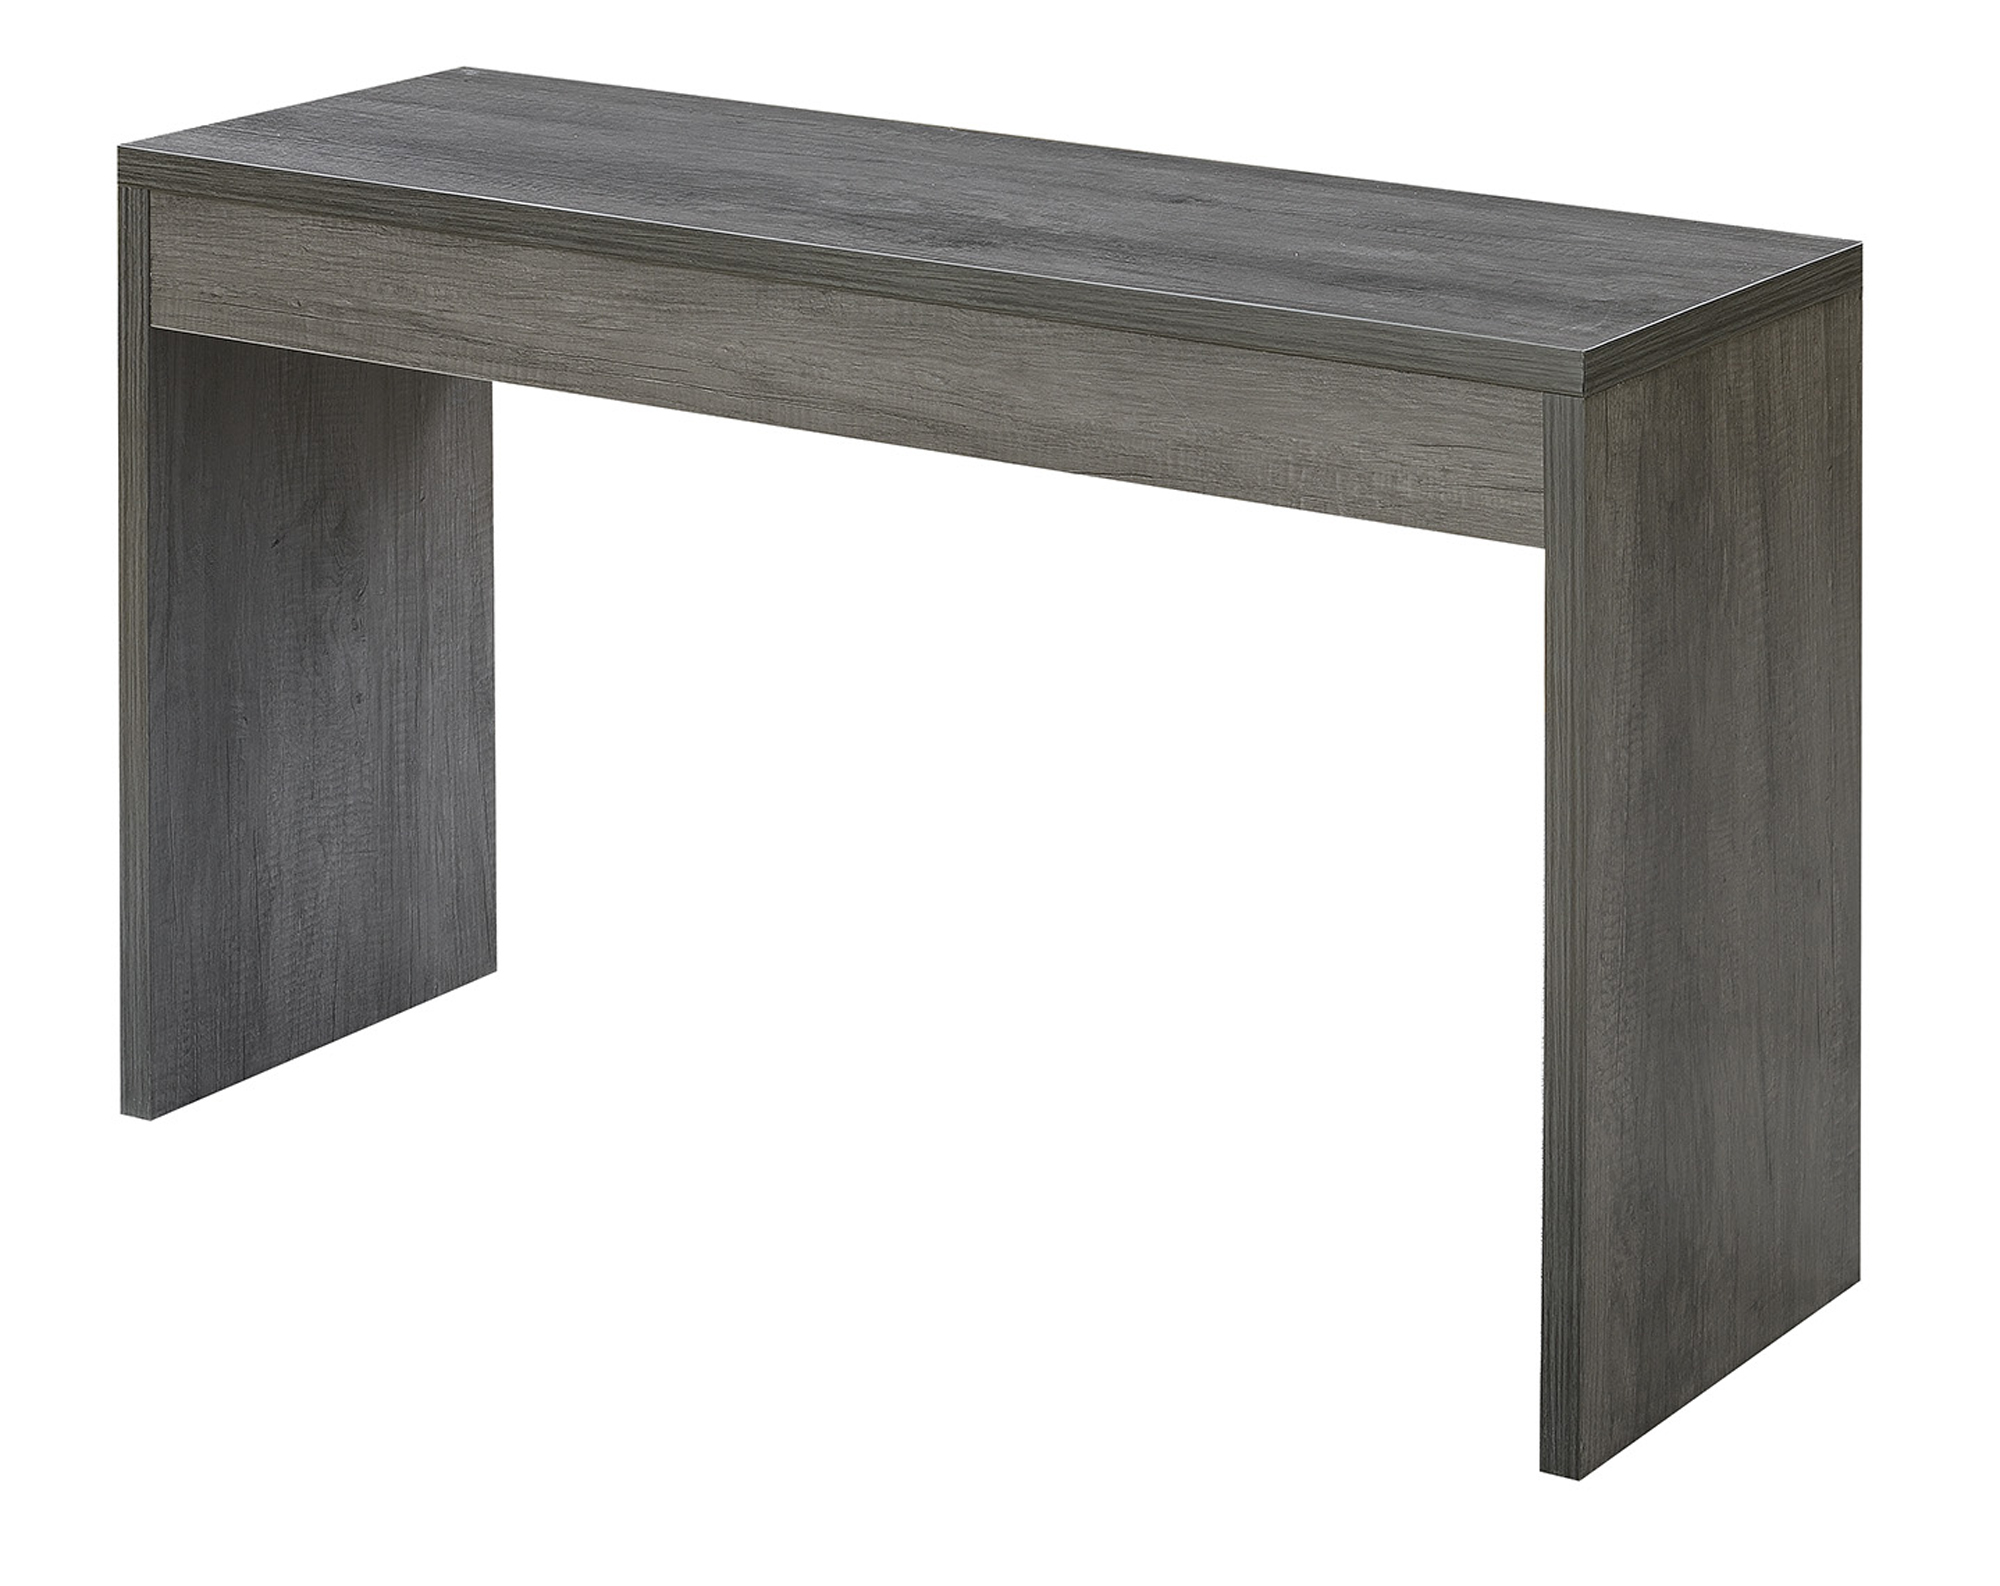 Convenience Concepts 111091WGY Northfield Hall Console Table, Charcoal Gray